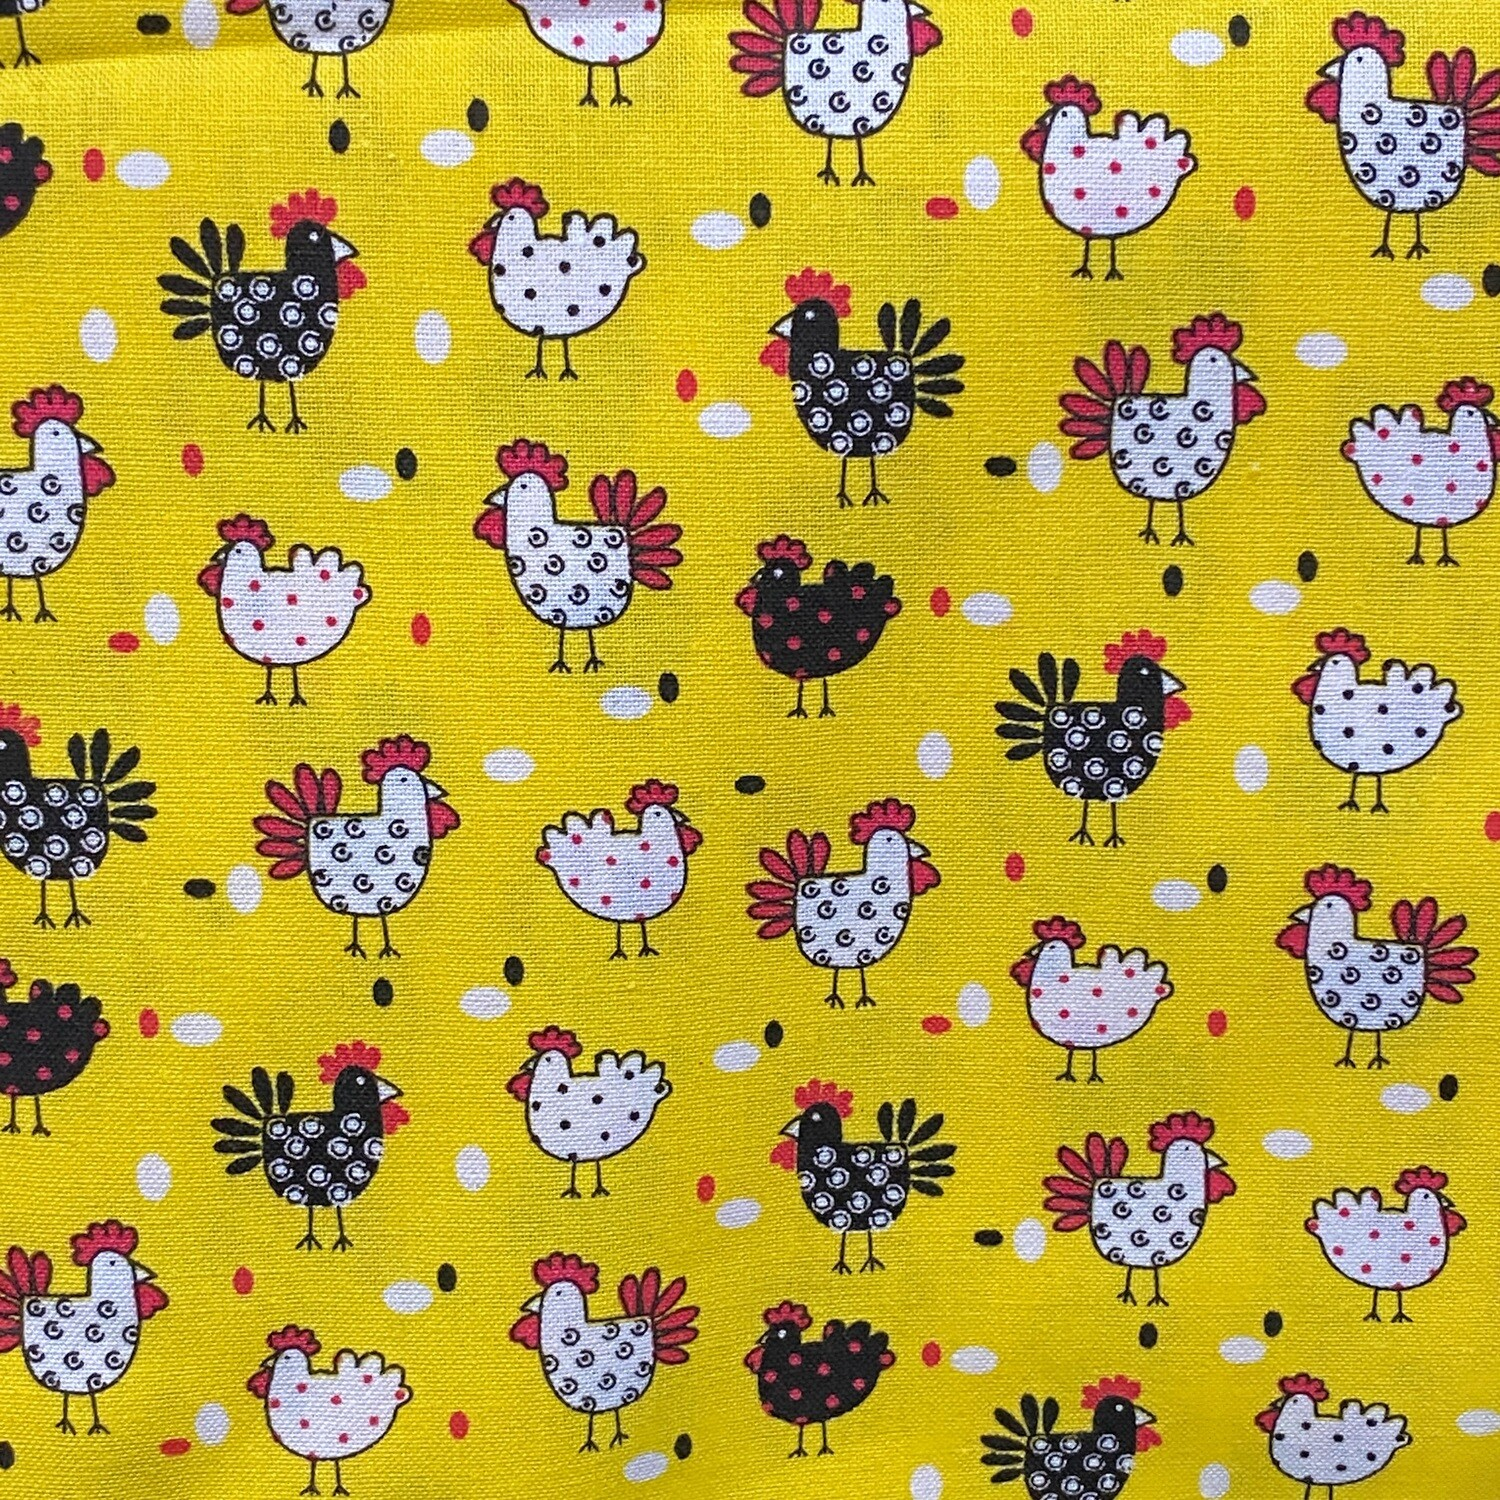 EasyFit Chickens on Yellow Reusable Cloth Face Mask